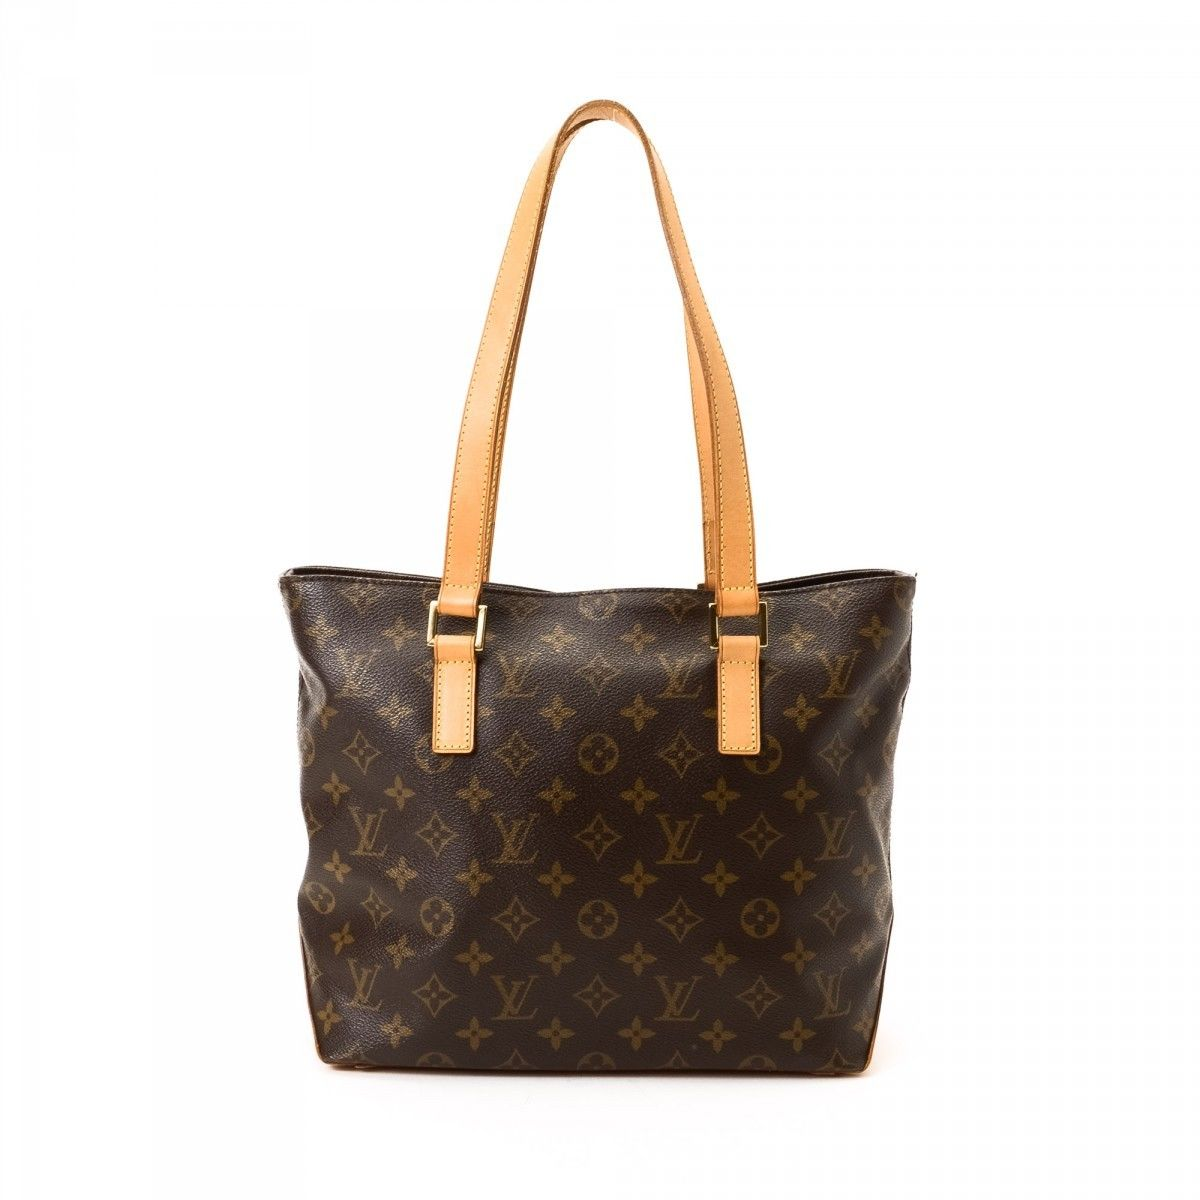 Pre-owned - Exotic leathers bag Louis Vuitton fEksny